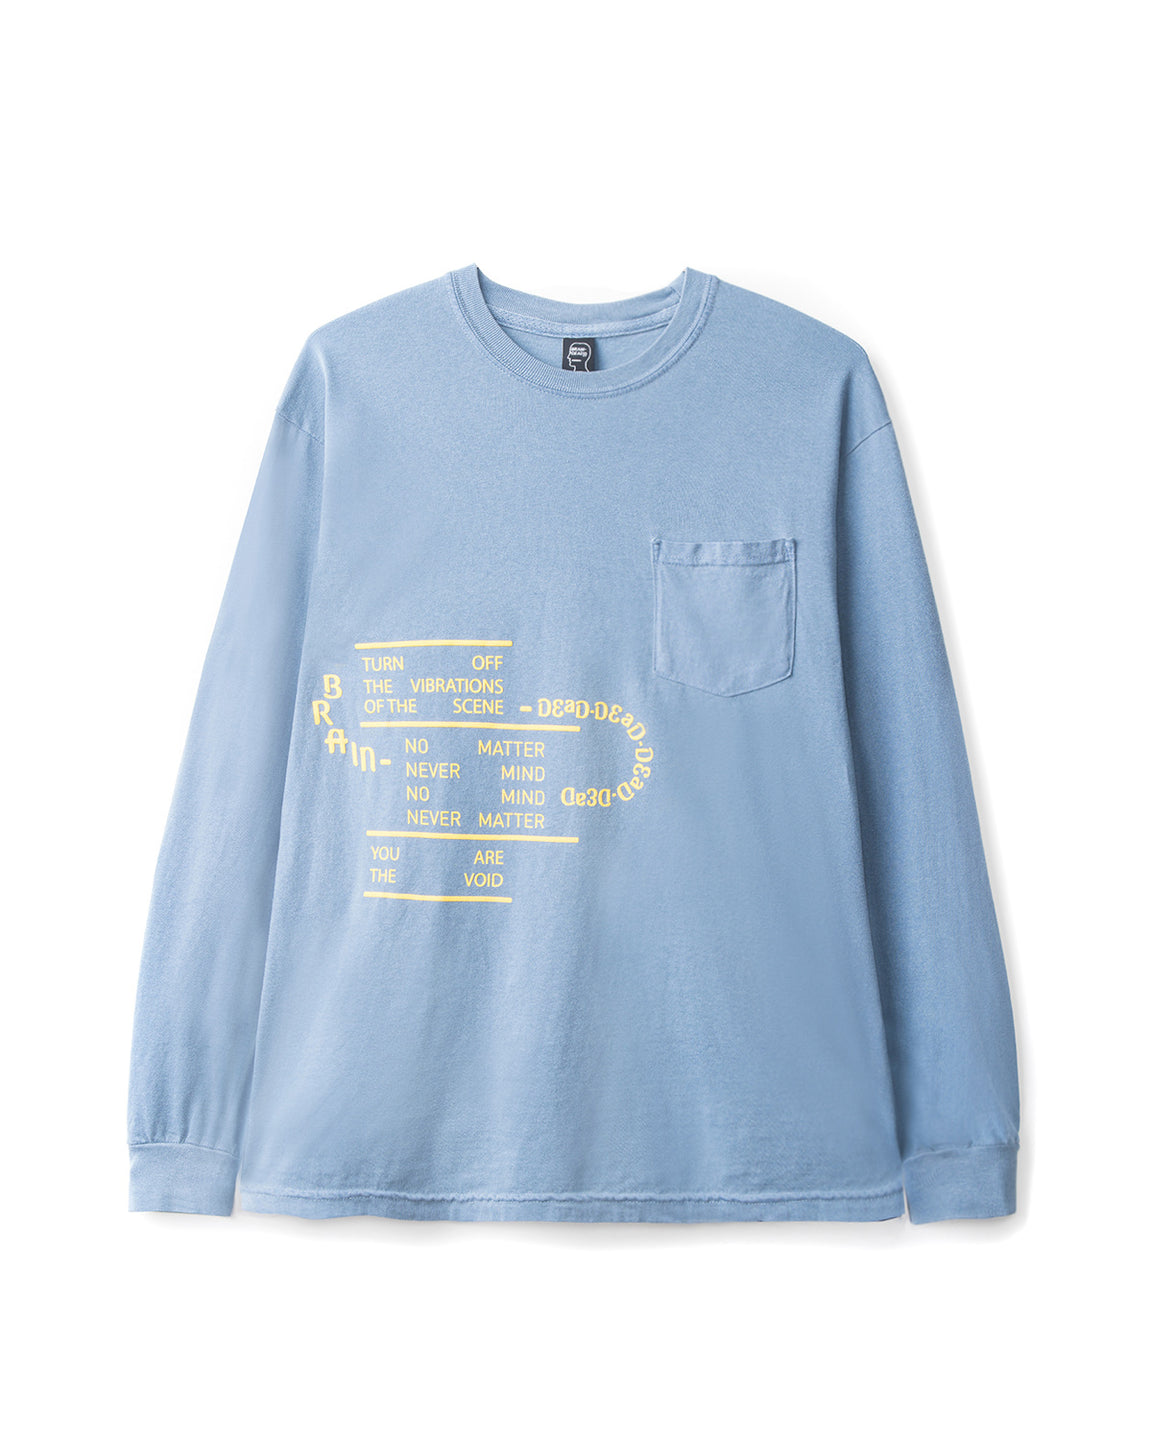 Ghost Long Sleeve - Blue Spruce - front